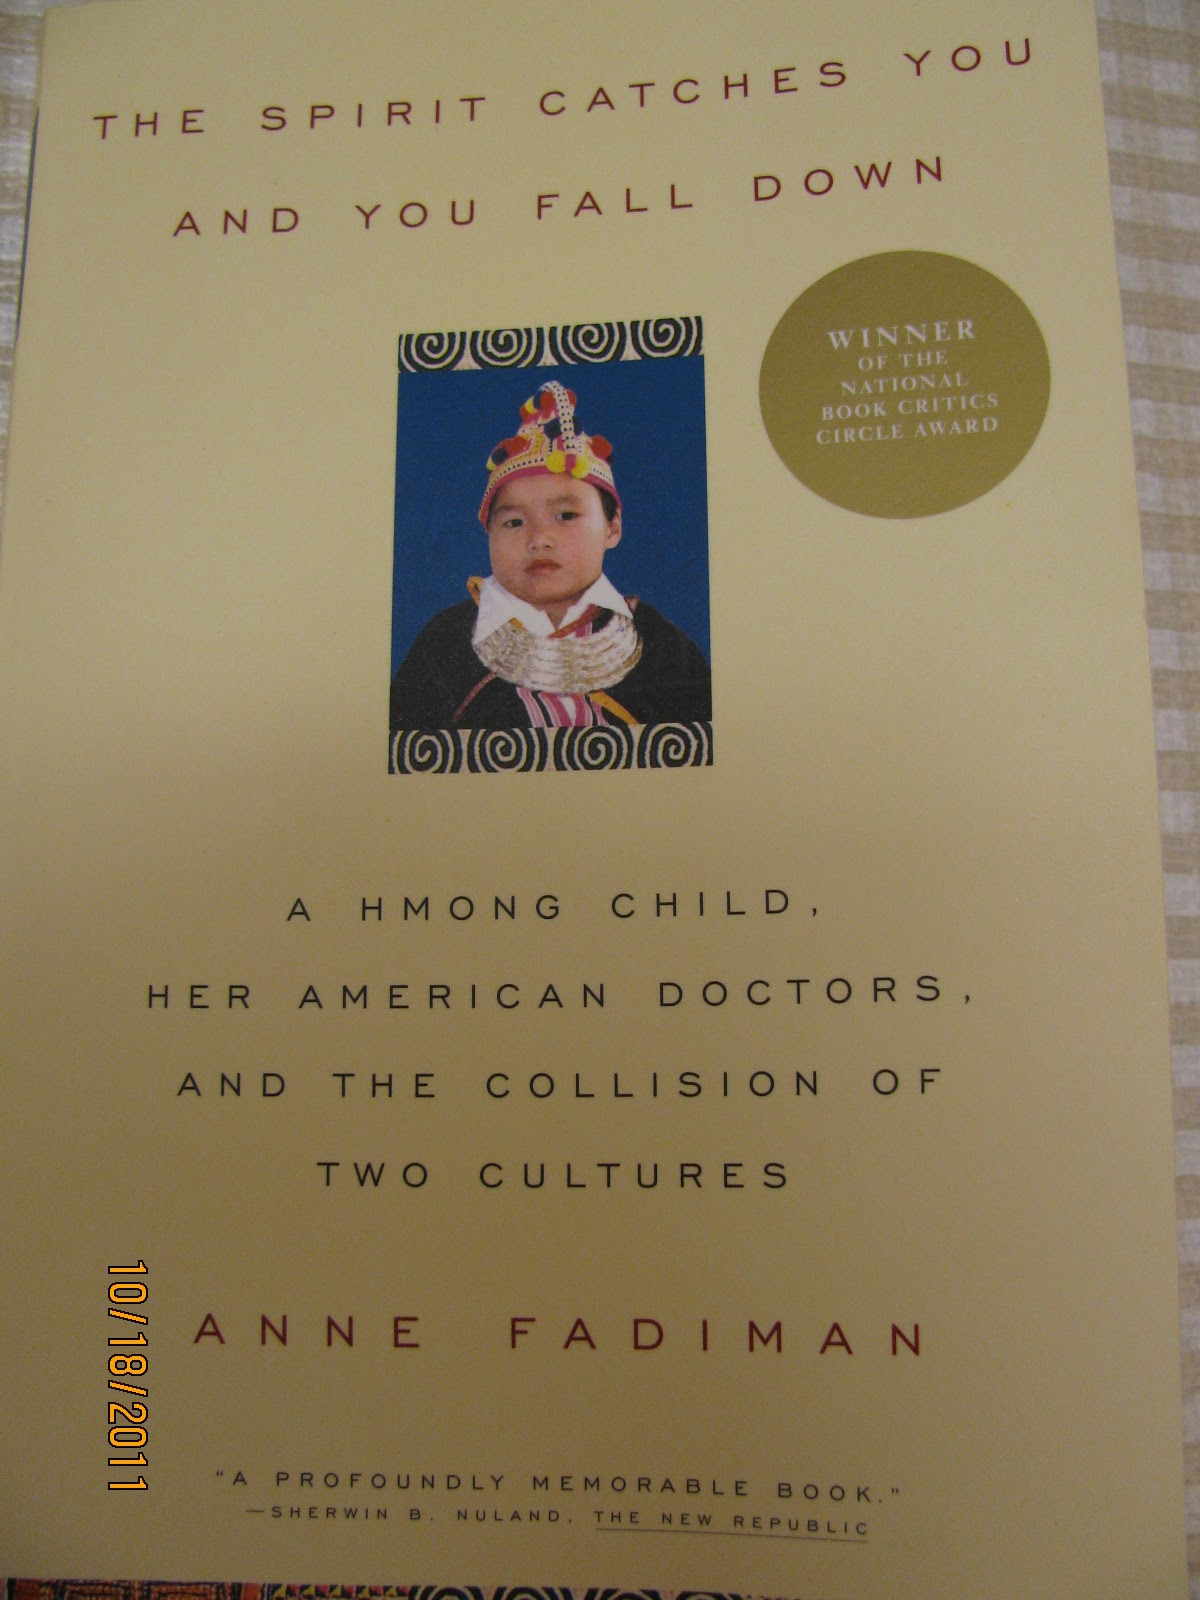 bookswami the spirit catches you and you fall down by anne fadiman the spirit catches you and you fall down by anne fadiman